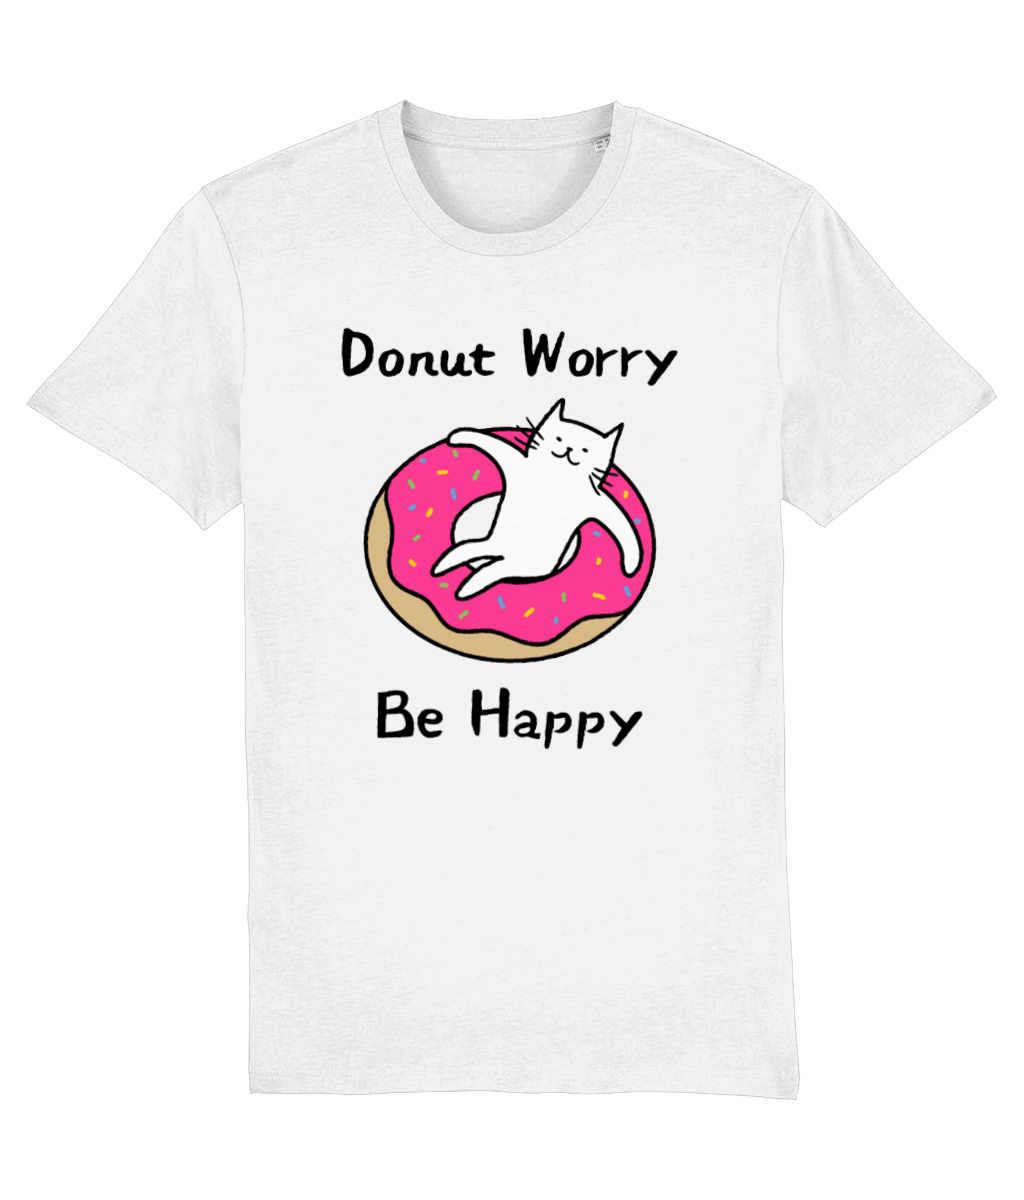 Unisex Organic Cotton T-Shirt Donut Worry Be Happy Cat